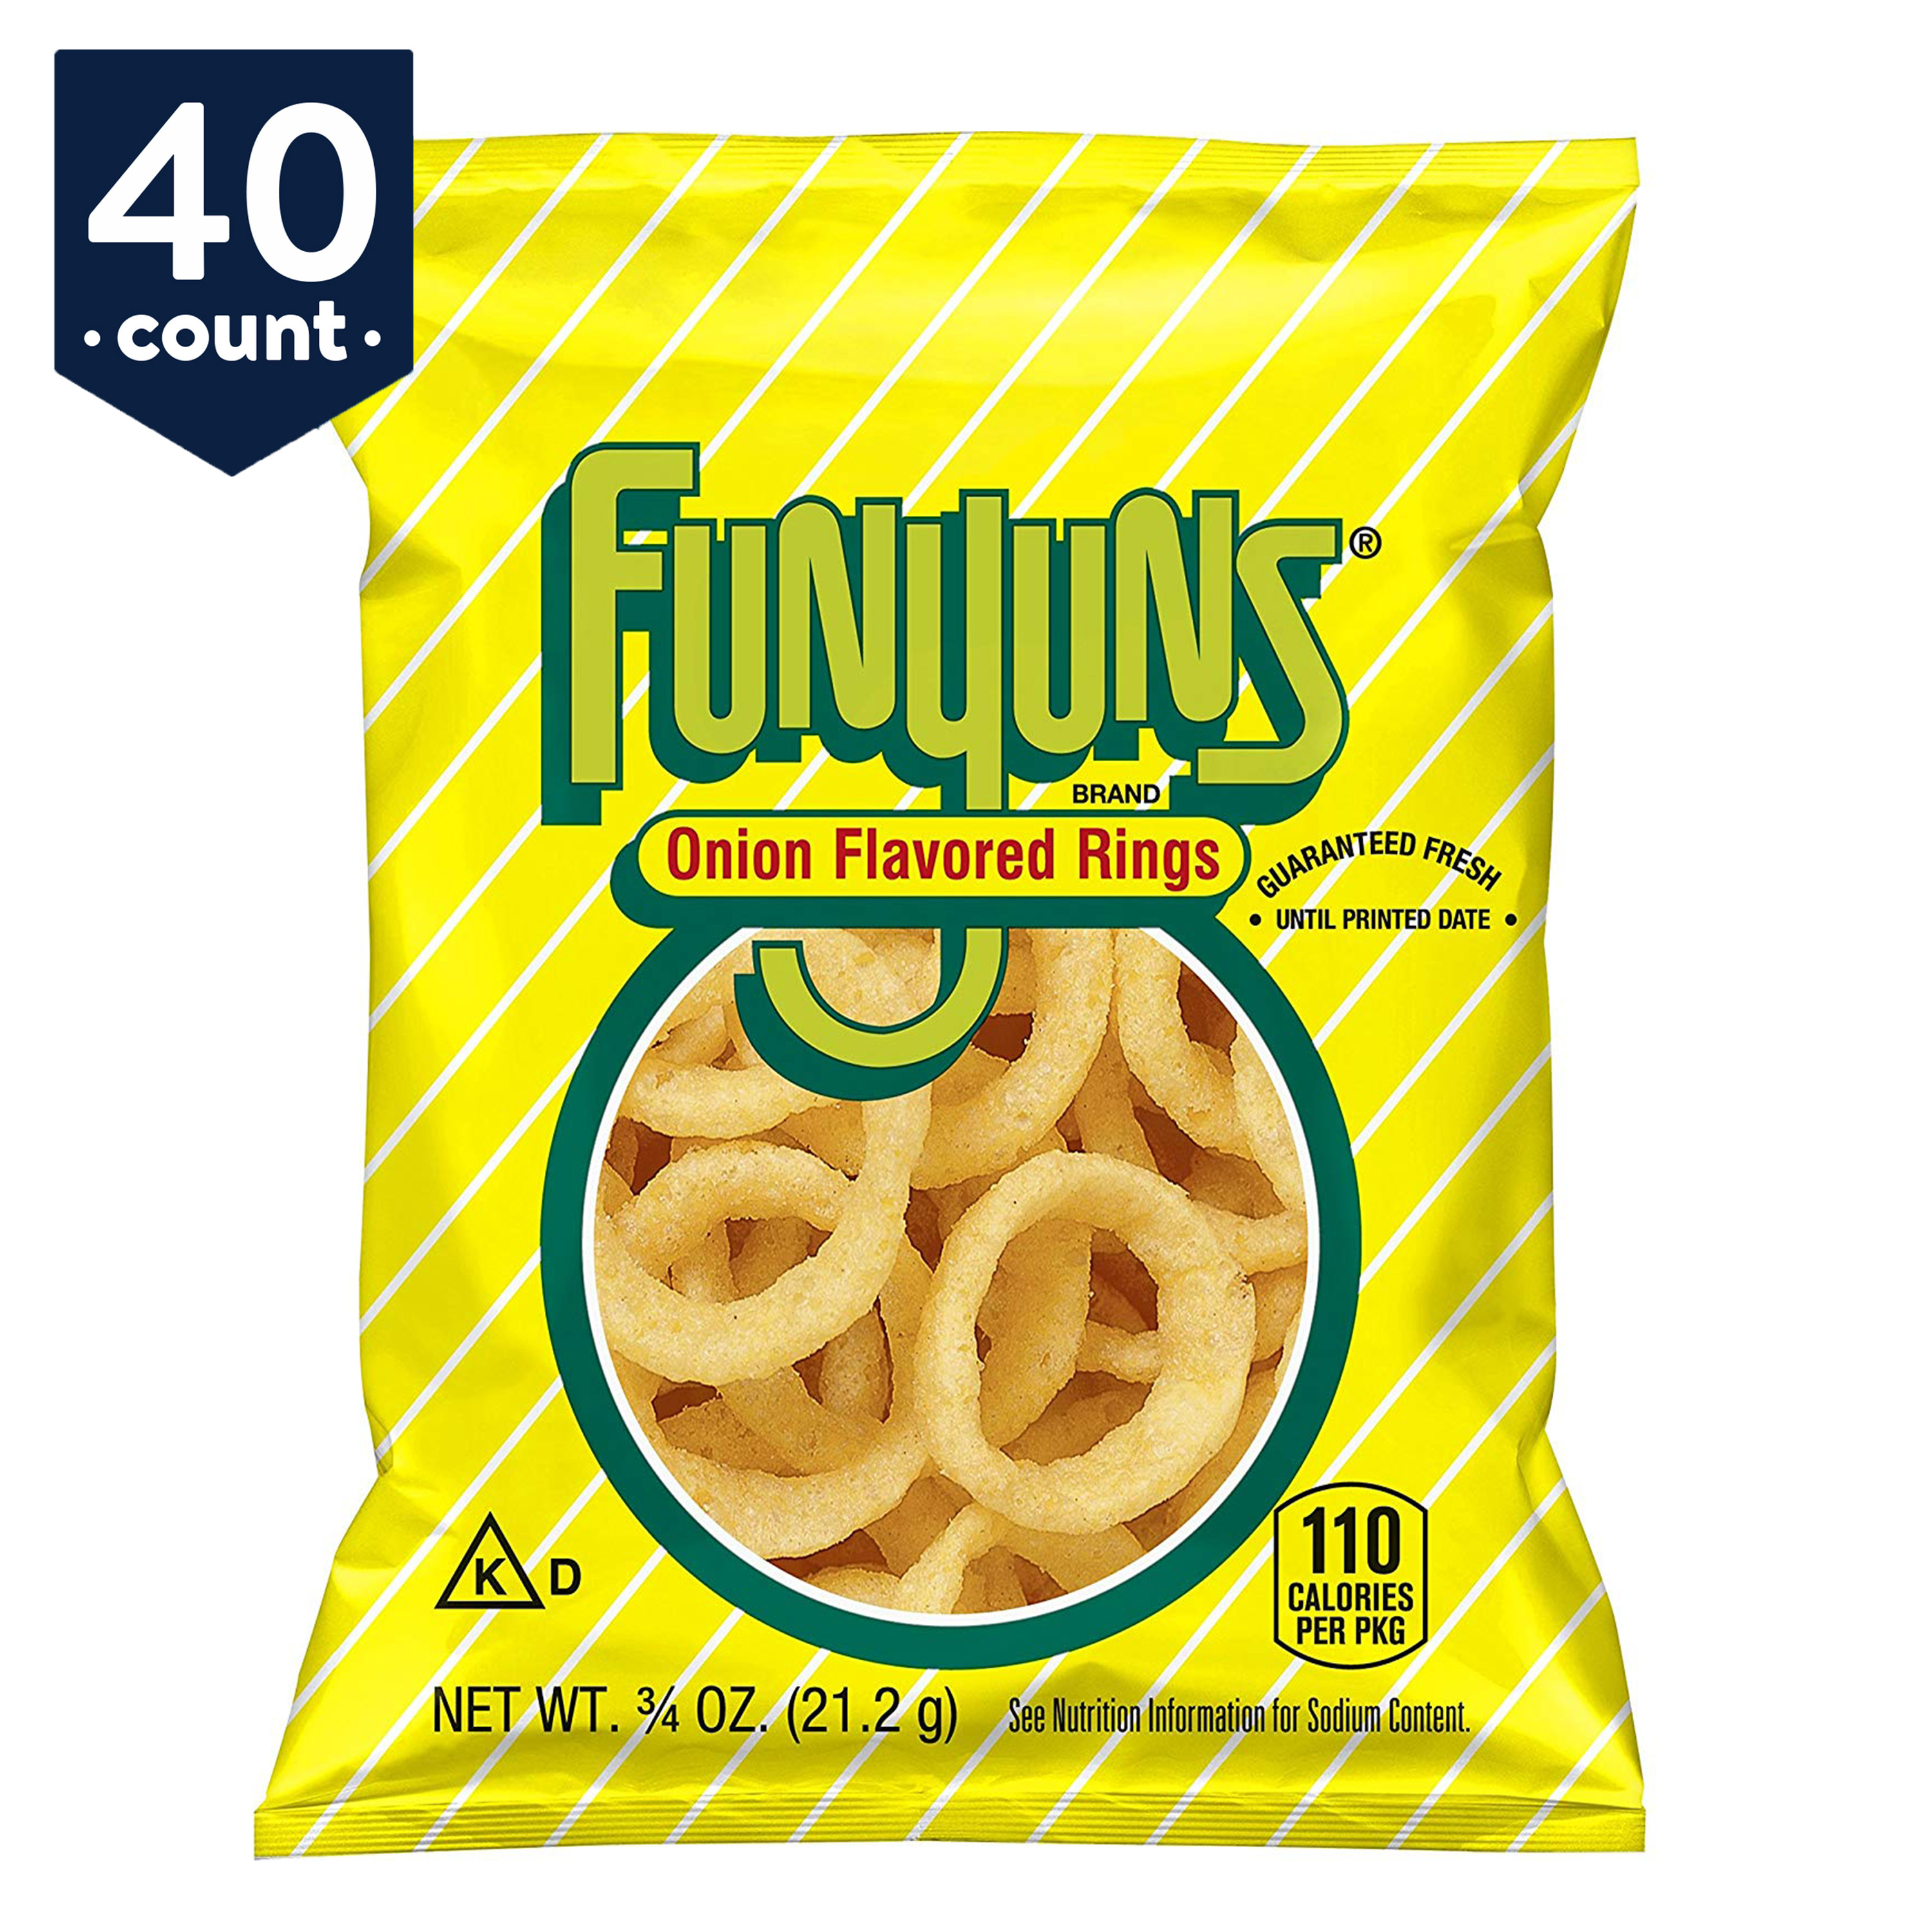 Funyuns Onion Flavored Rings Snack Pack, 0.75 oz Bags, 40 Count